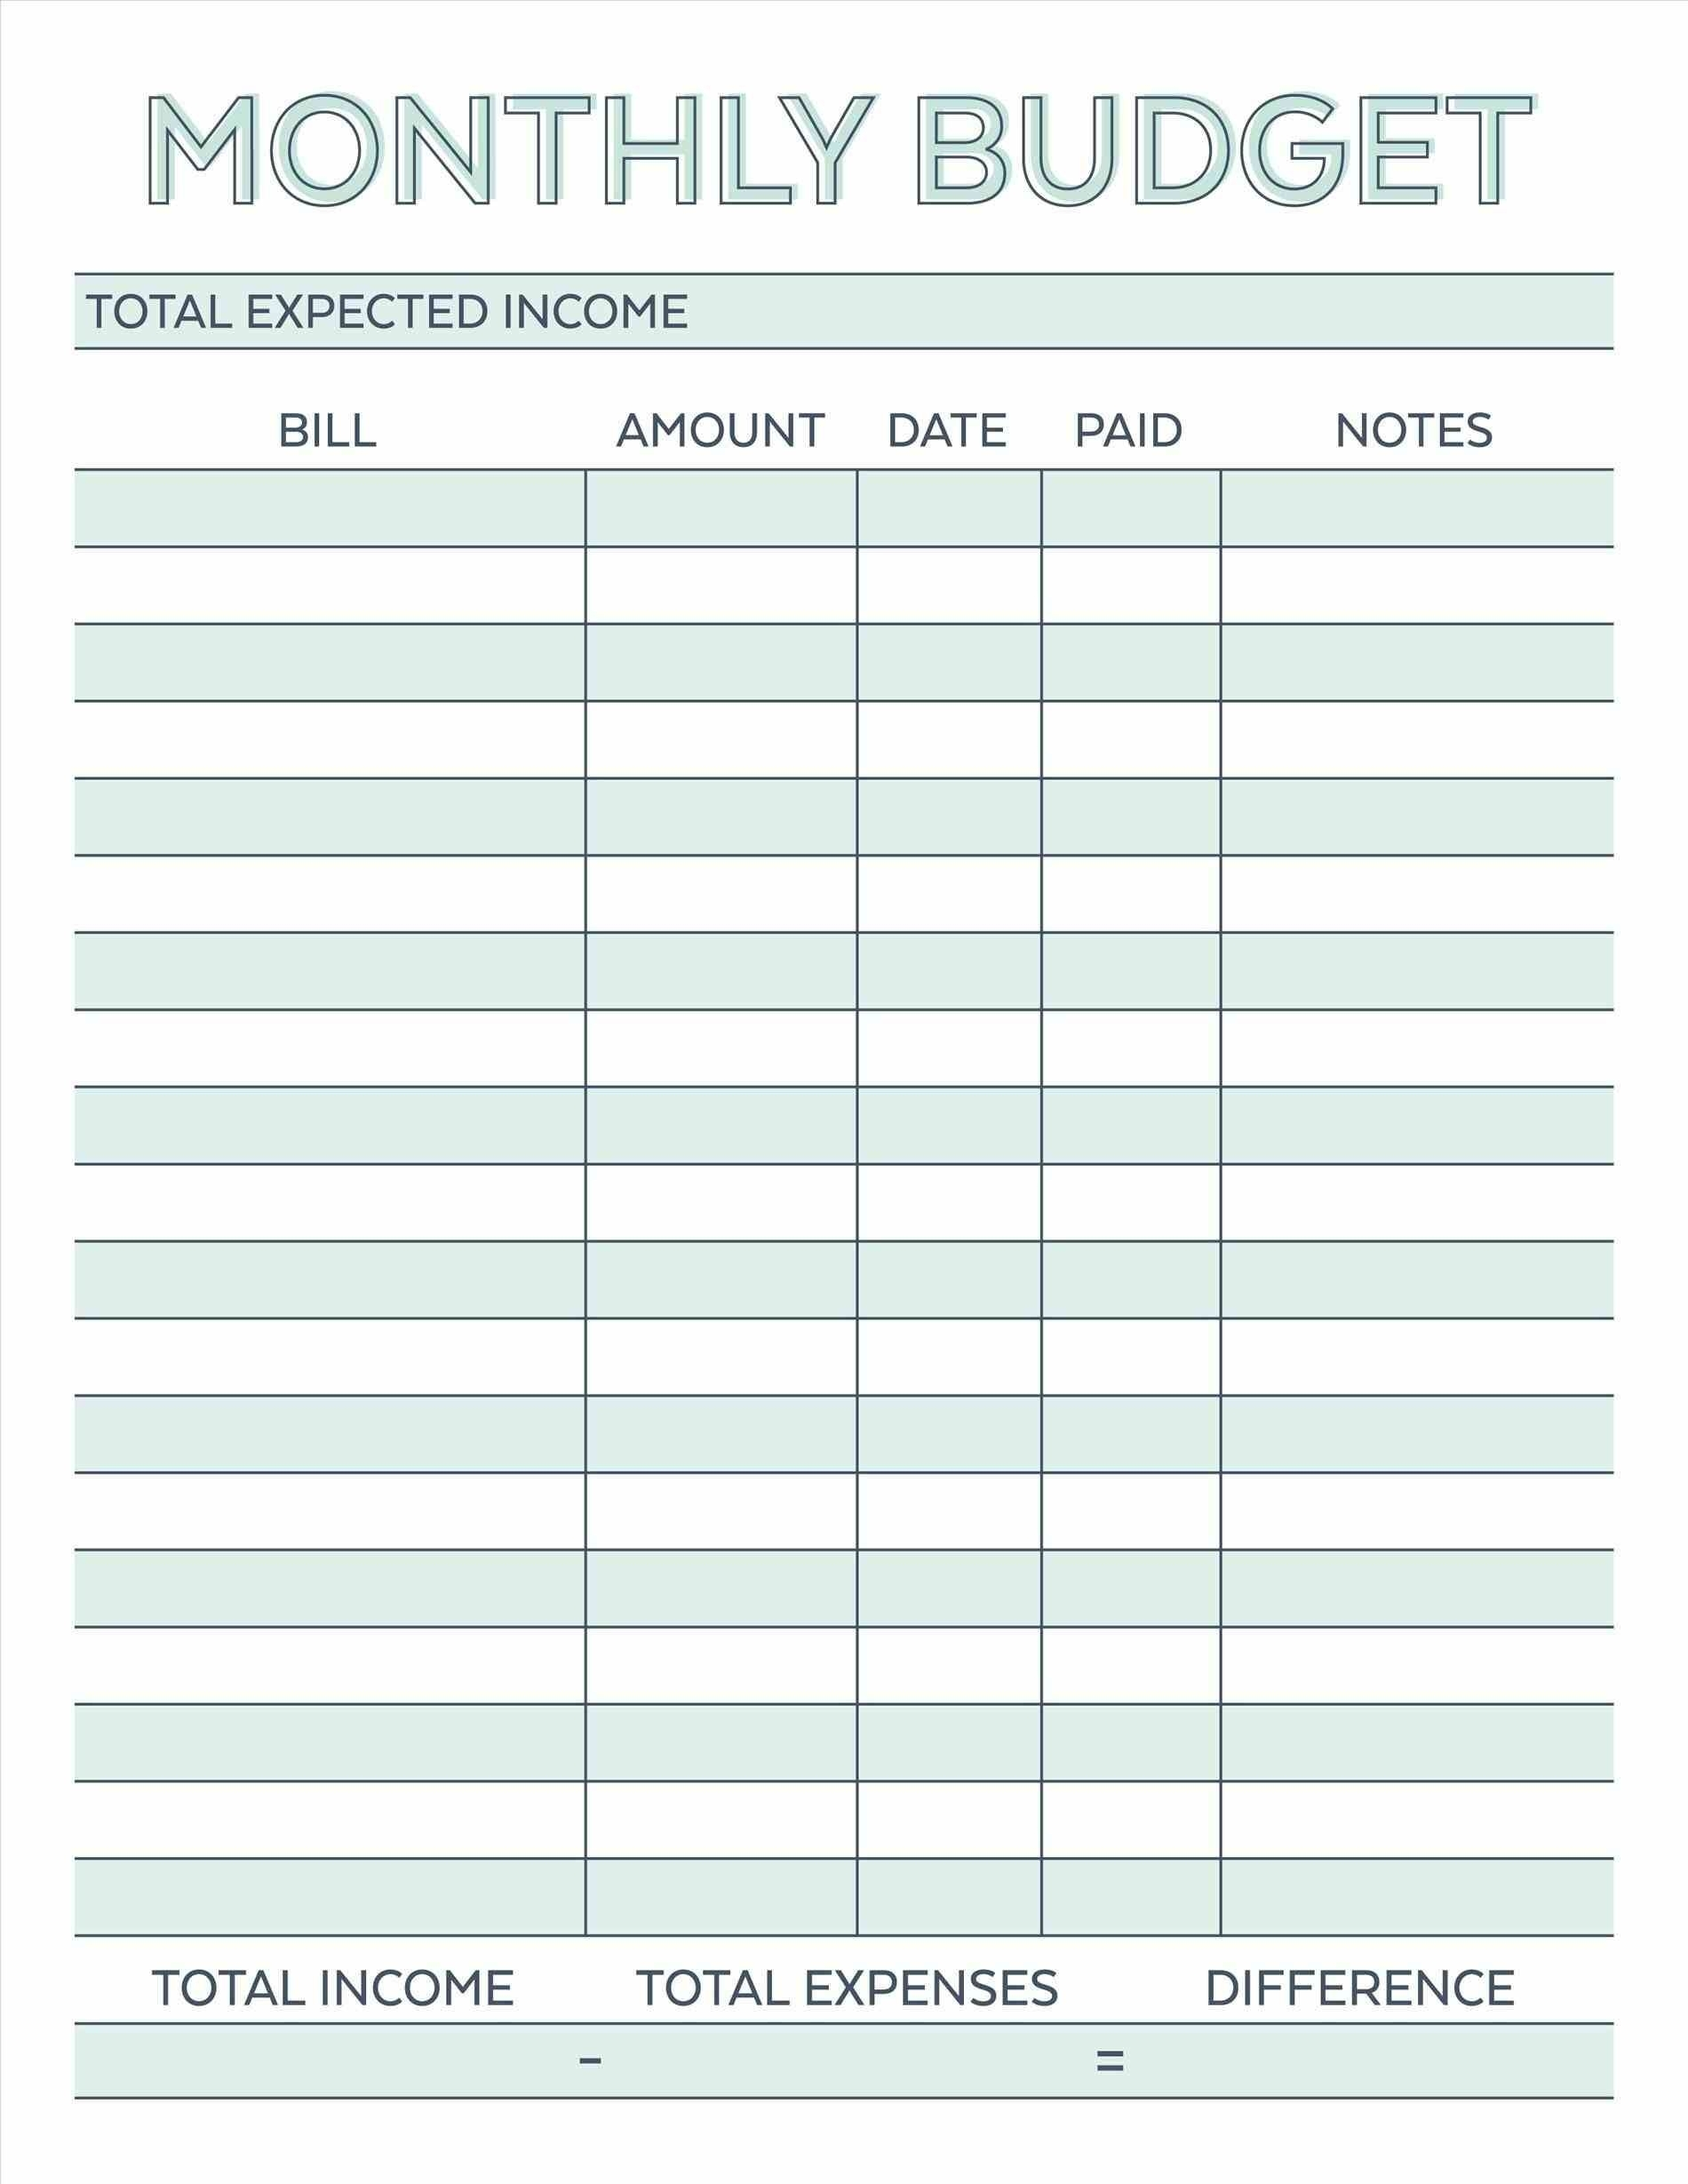 Budget Planner Planner Worksheet Monthly Bills Template Free pertaining to Blank Printable Monthly Bill Organizer